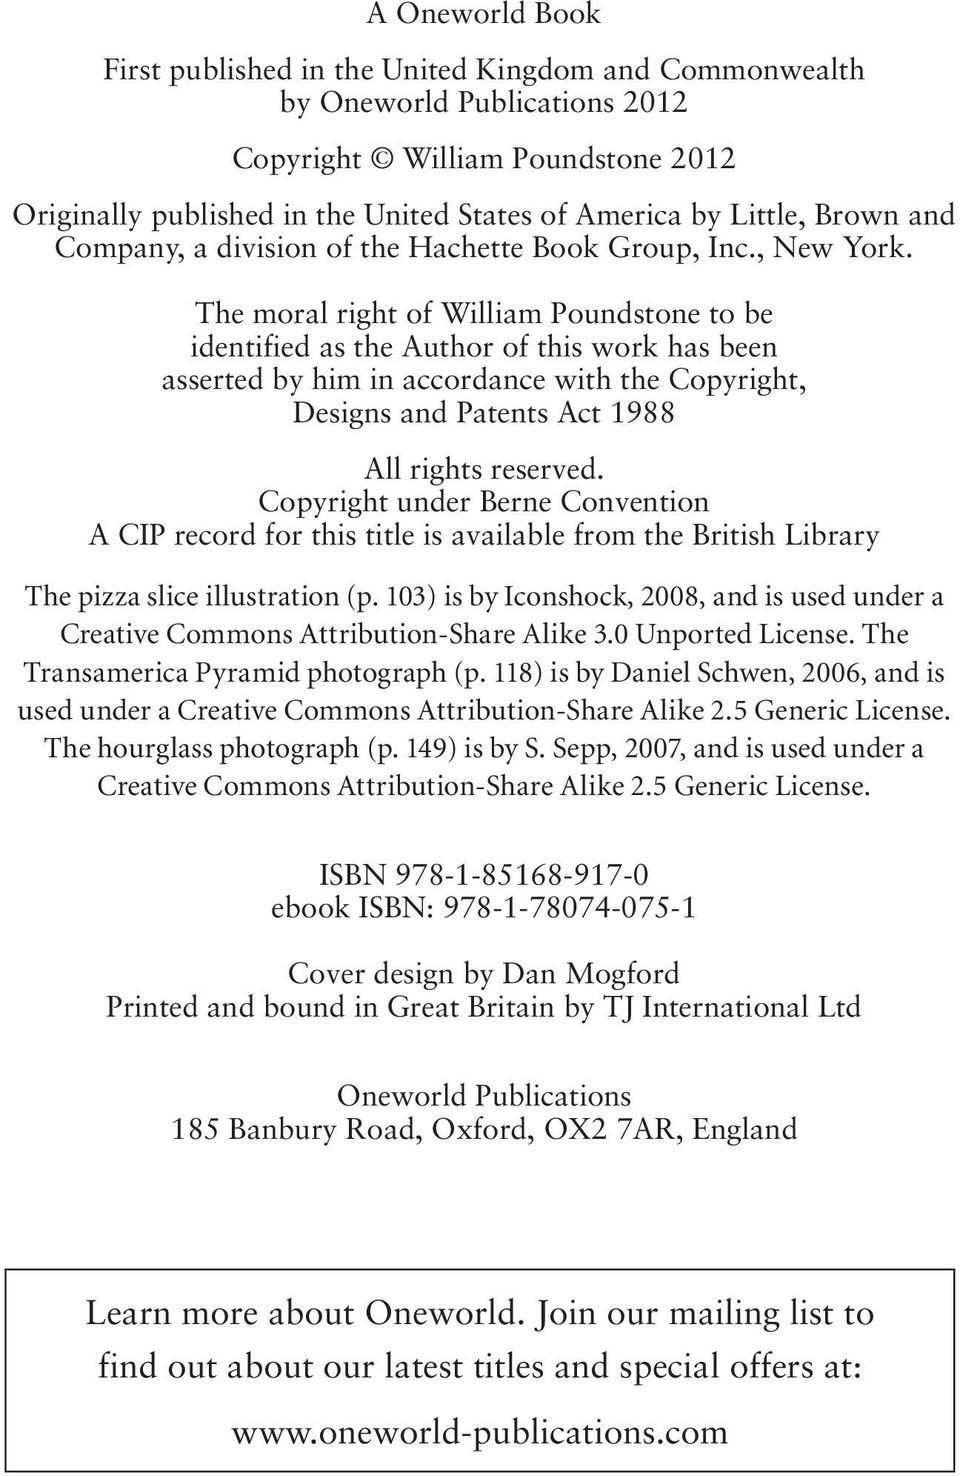 The moral right of William Poundstone to be identified as the Author of this work has been asserted by him in accordance with the Copyright, Designs and Patents Act 1988 All rights reserved.